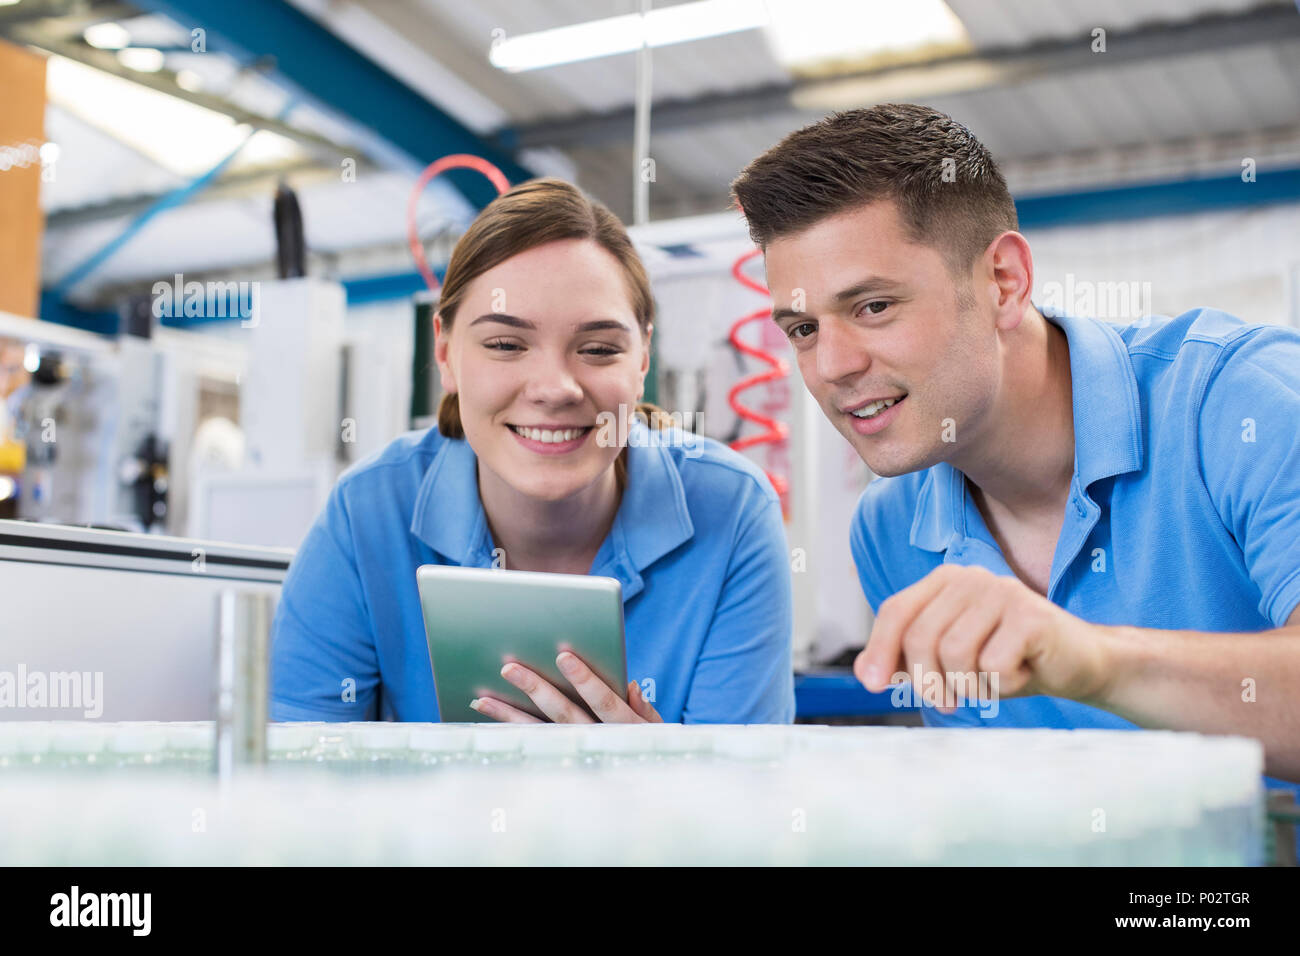 Engineer And Apprentice With Digital Tablet Working In Bottle Capping Factory - Stock Image